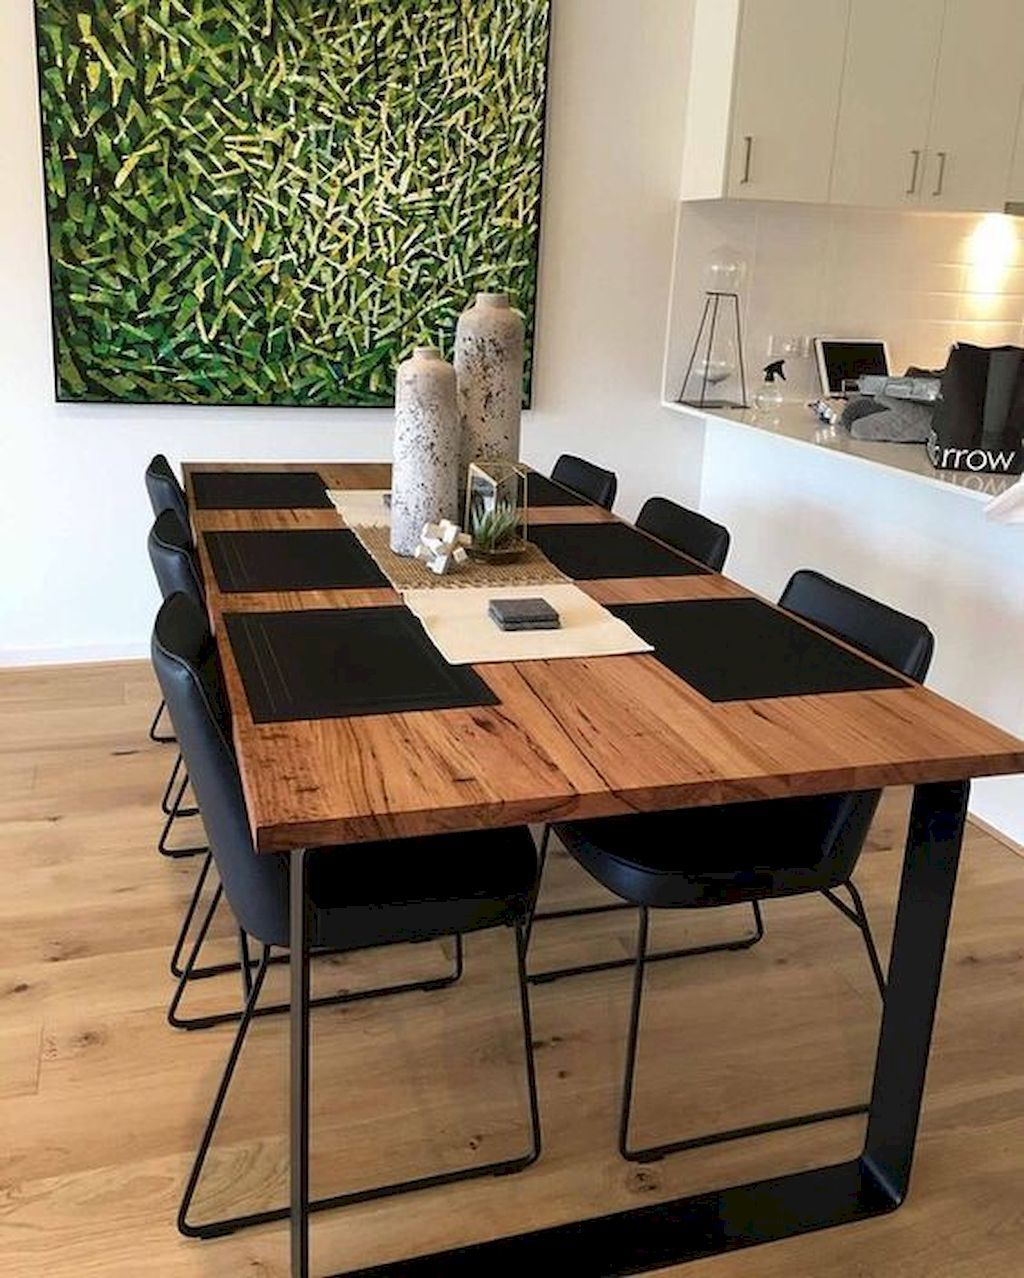 In Each Residence There Are Usually Three Main Communal Rooms By Which Folks Spend Nearly All Of Their Time The Room The Place Outdoor Dining Furniture Dining Room Furniture Beautiful